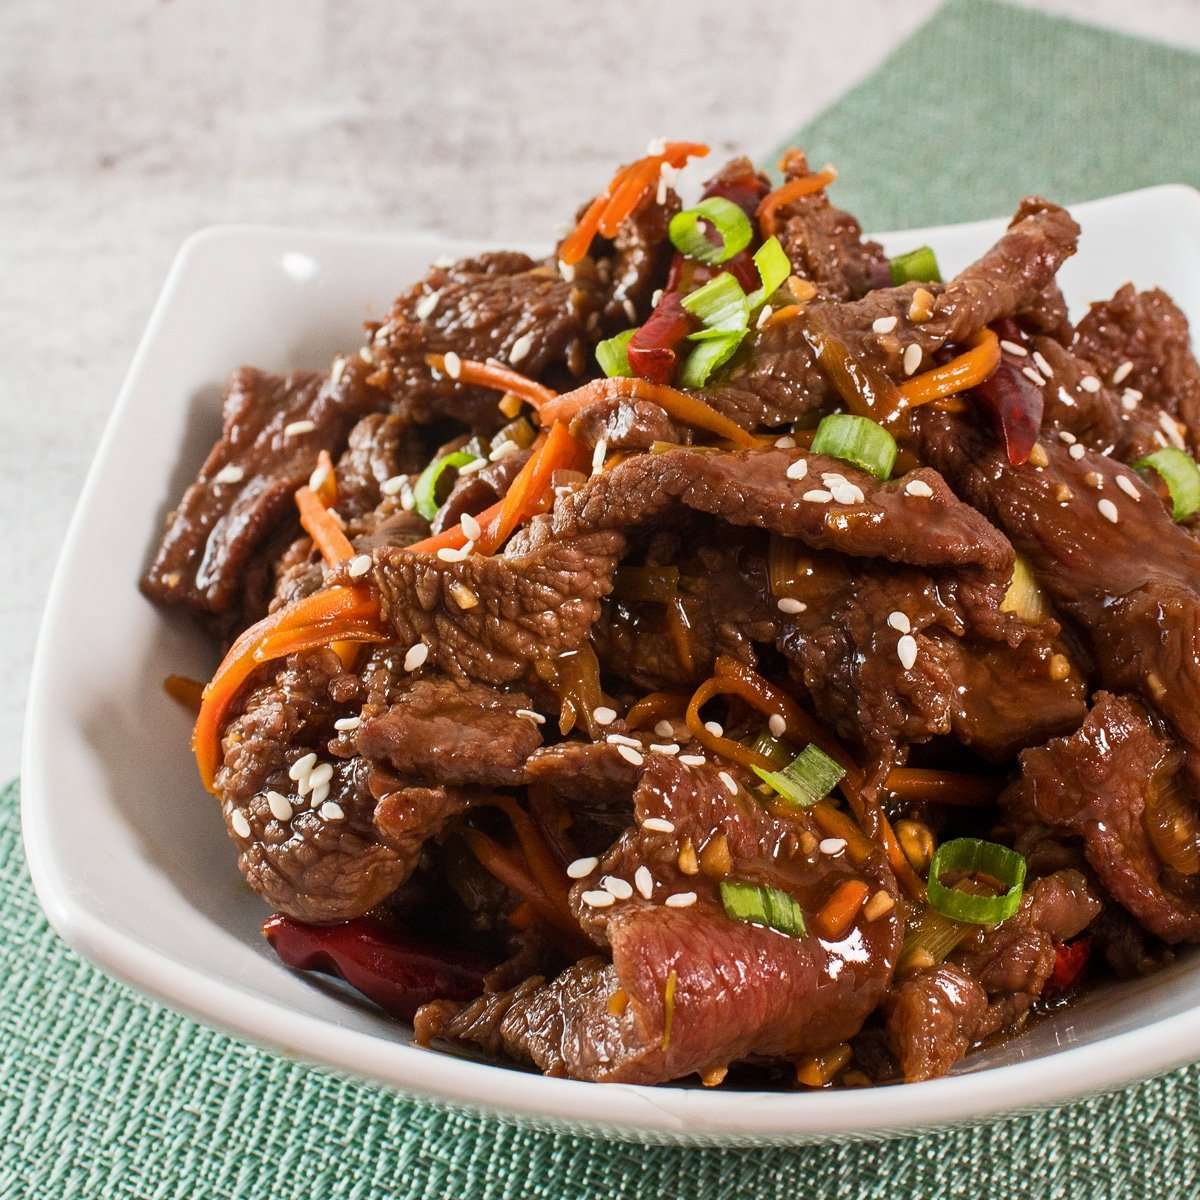 Large square image showing cooked mongolian beef from a slightly overhead side view in a white bowl on light background.